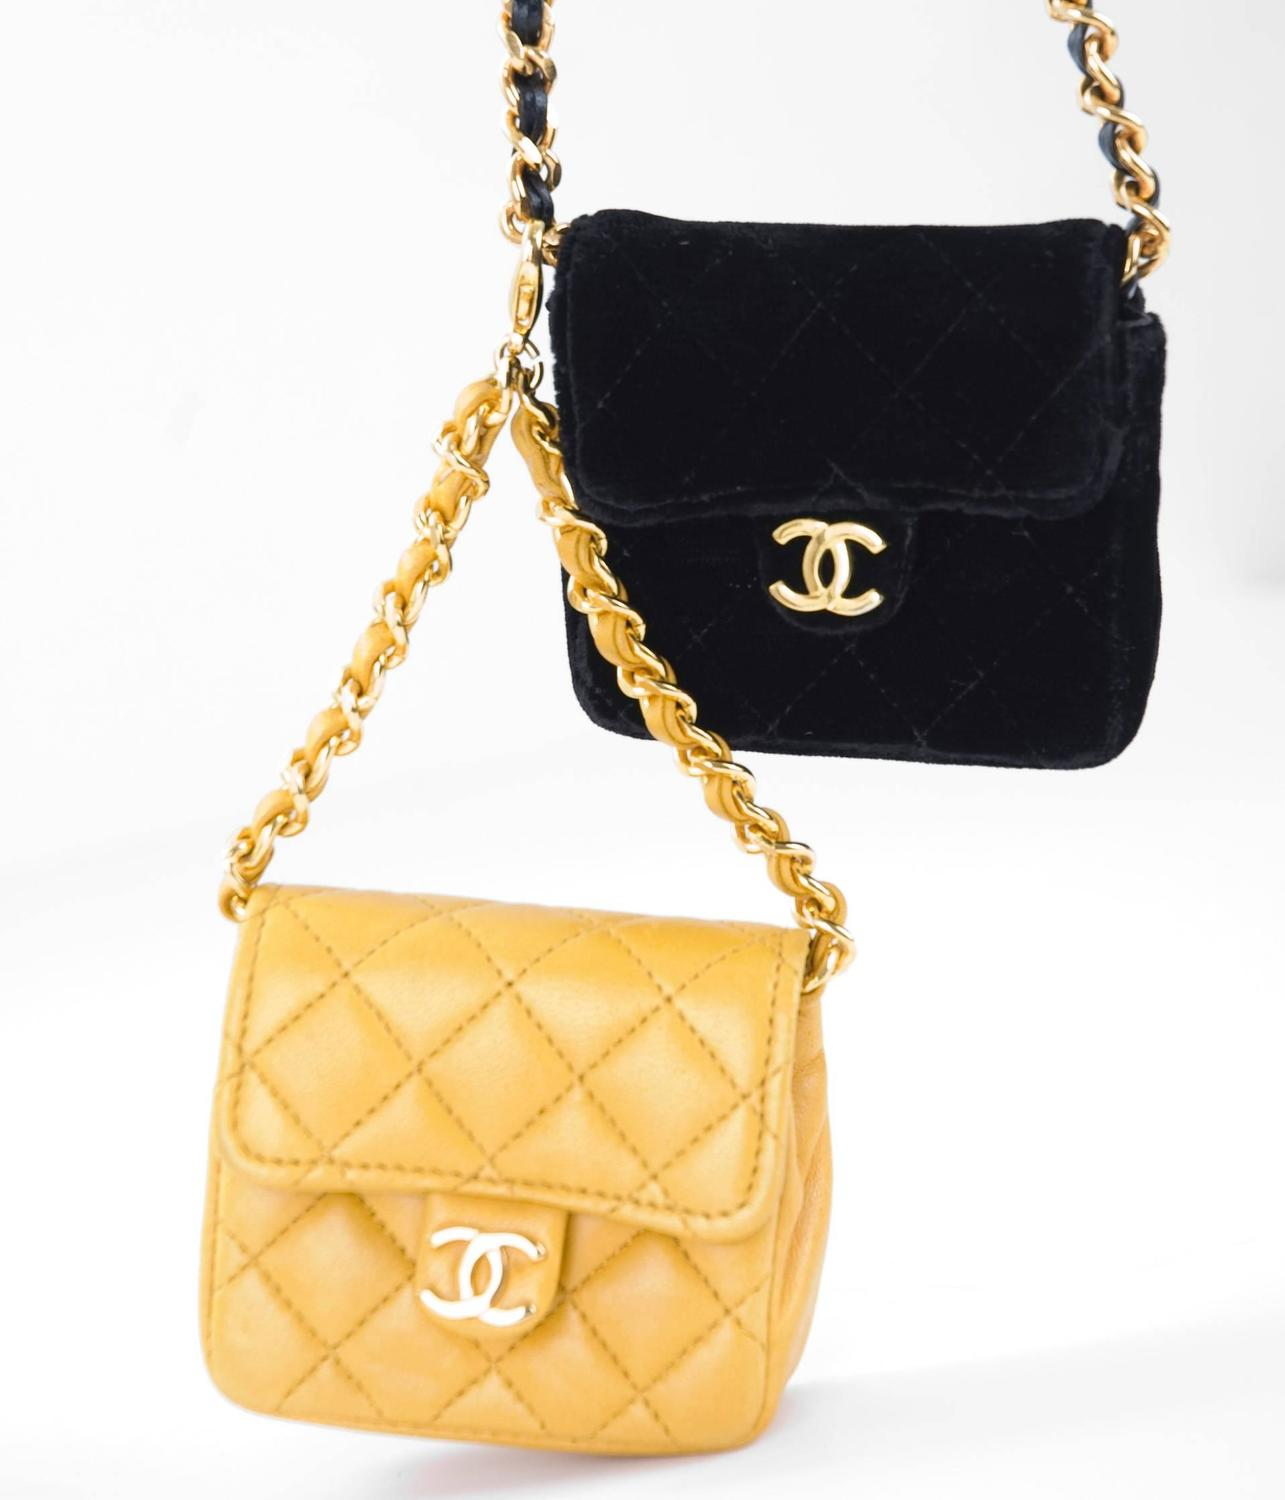 Chanel Micro Mini Flap Bag For Sale At 1stdibs